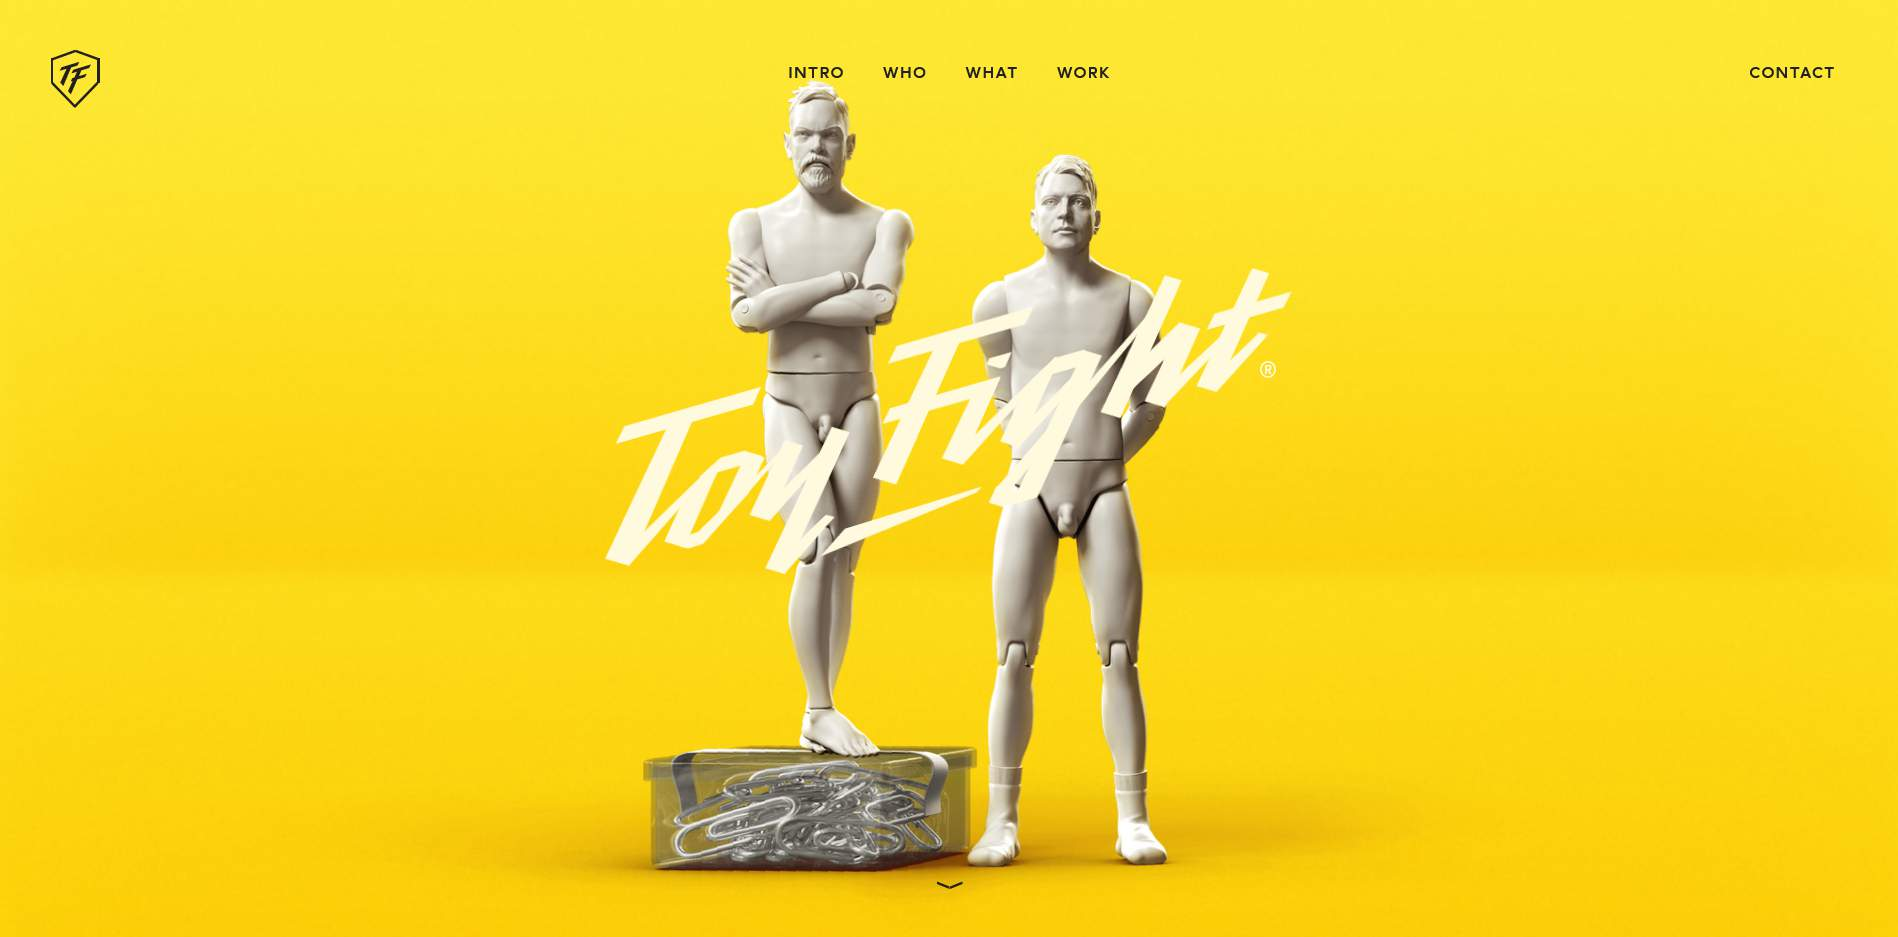 ToyFight homepage, showing off 3D-rendered sculptures of the duo behind the web design company.